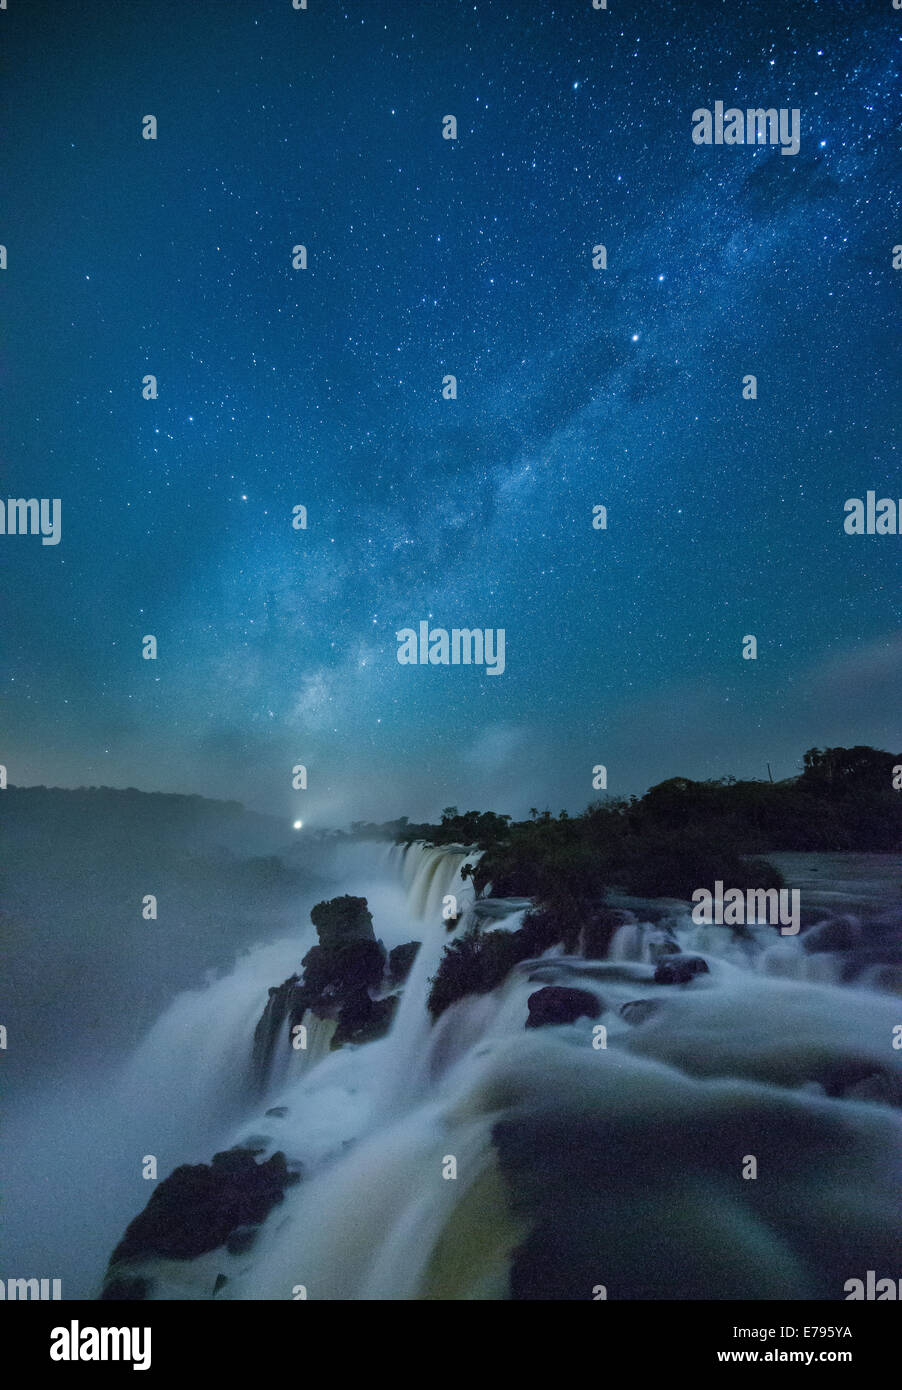 the Milky Way over Iguazu Falls at night, Argentina - Stock Image